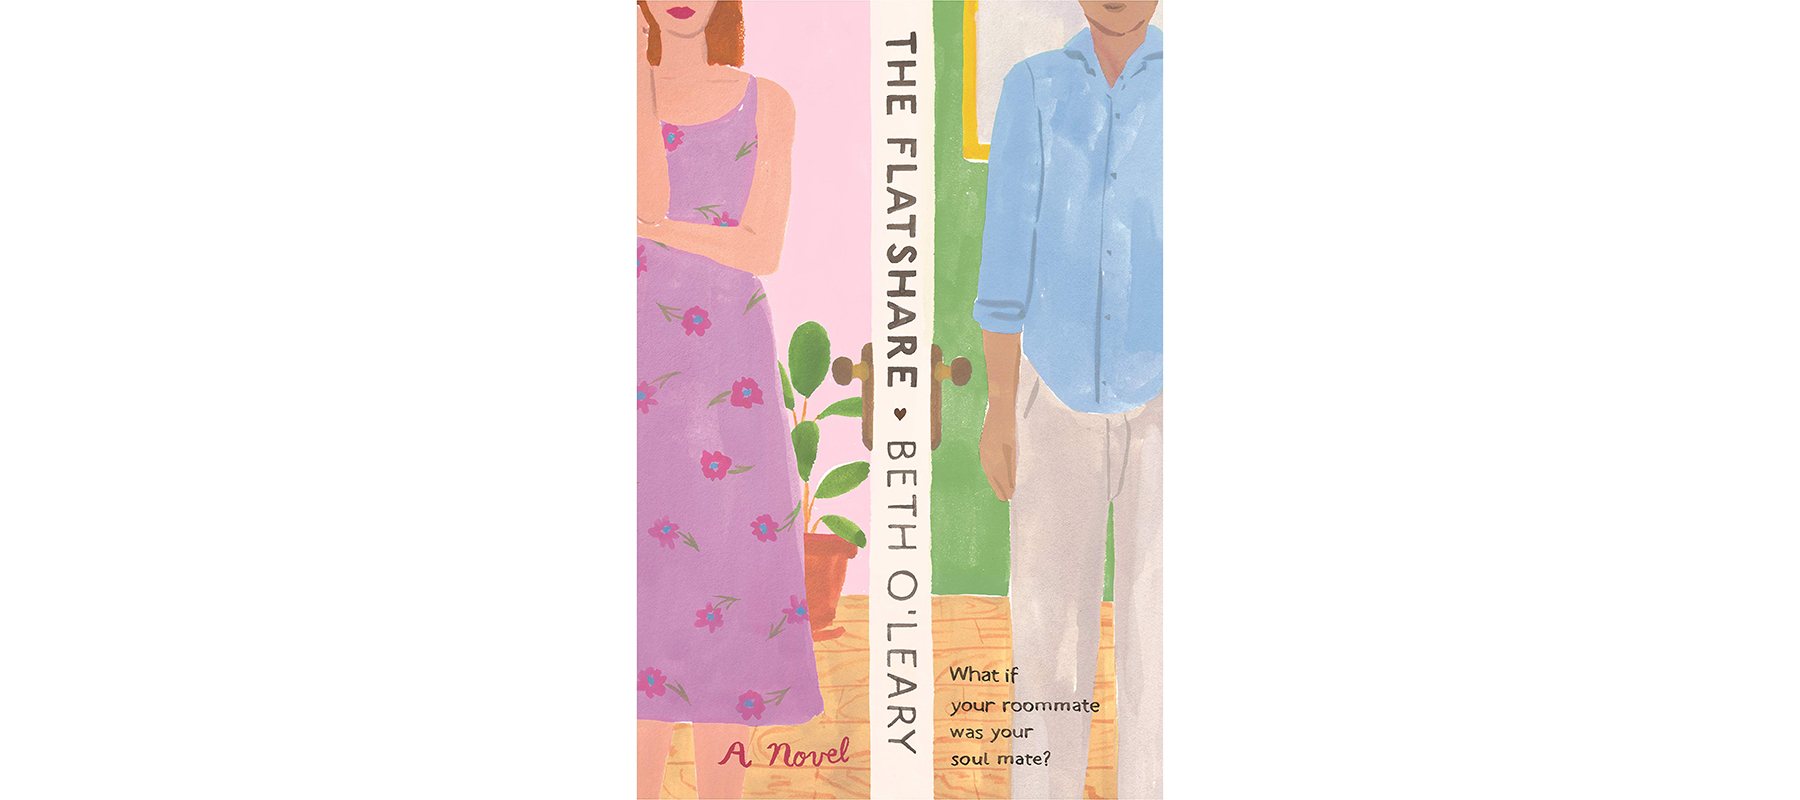 Best Beach Reads: Cover of The Flatshare, by Beth O'Leary